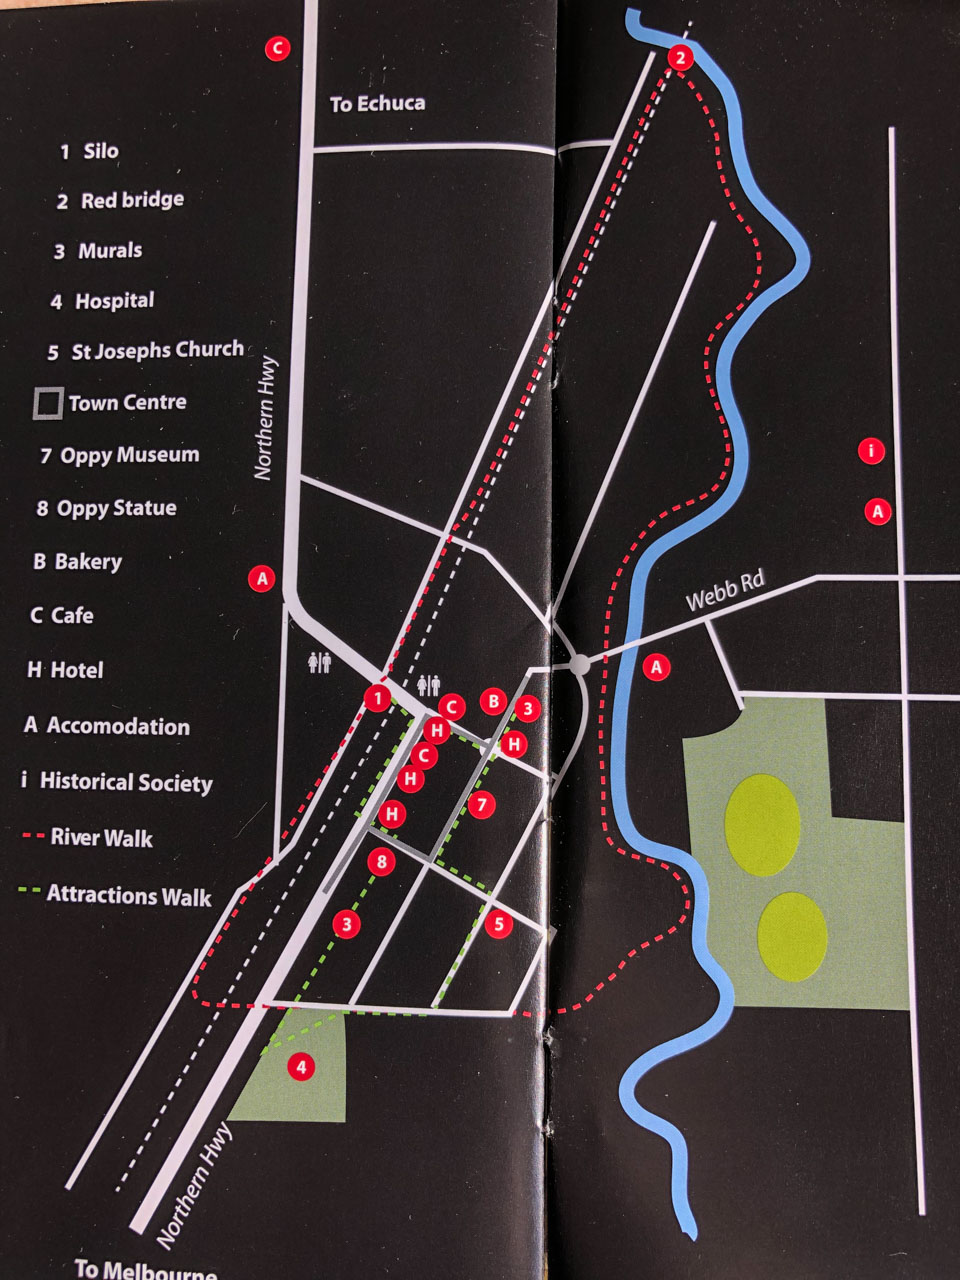 The river walk route shown on the map of Rochester, Victoria